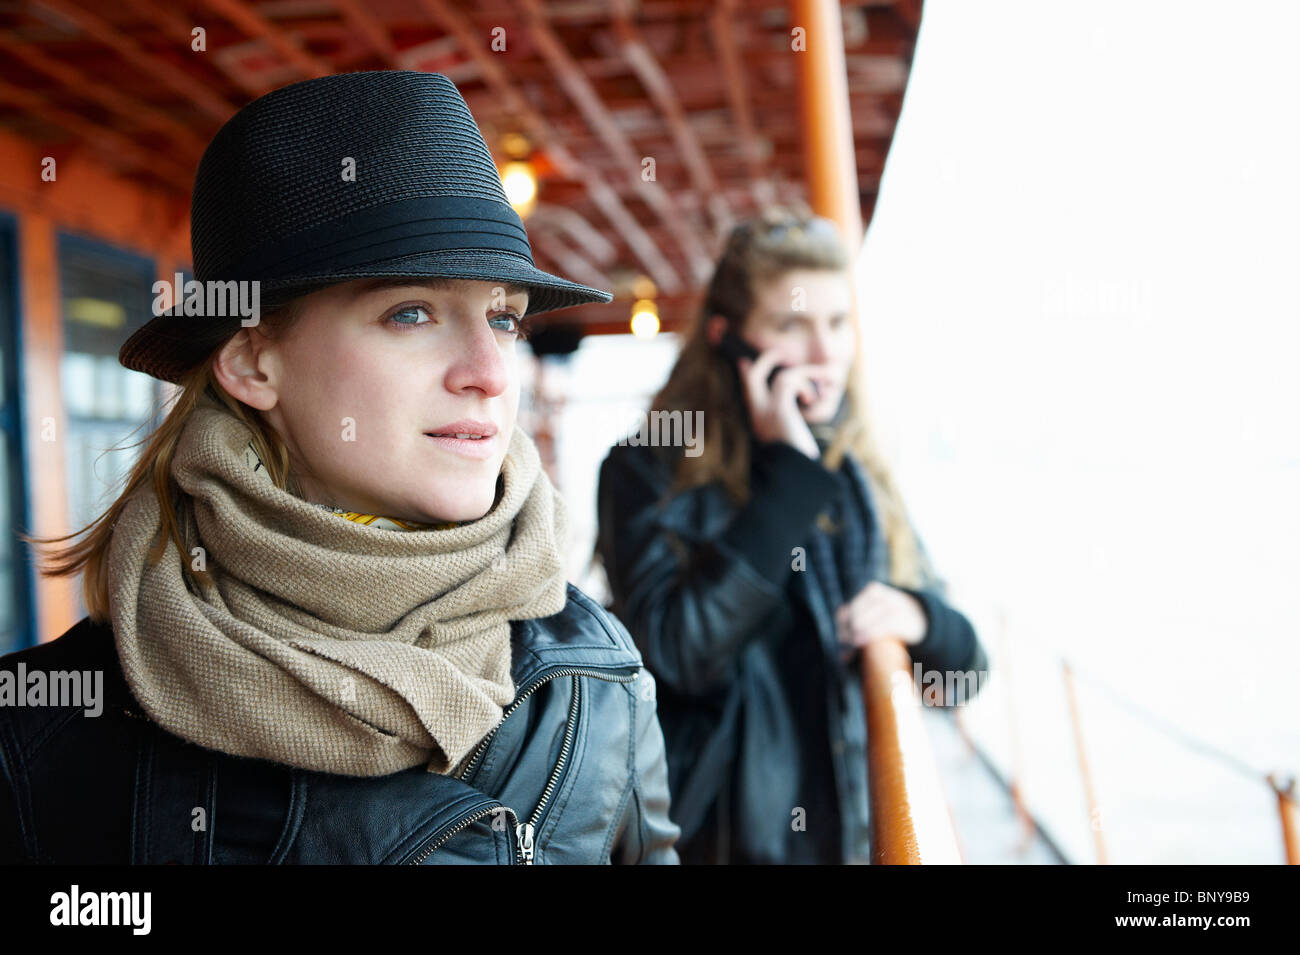 Women on a ferry boat - Stock Image